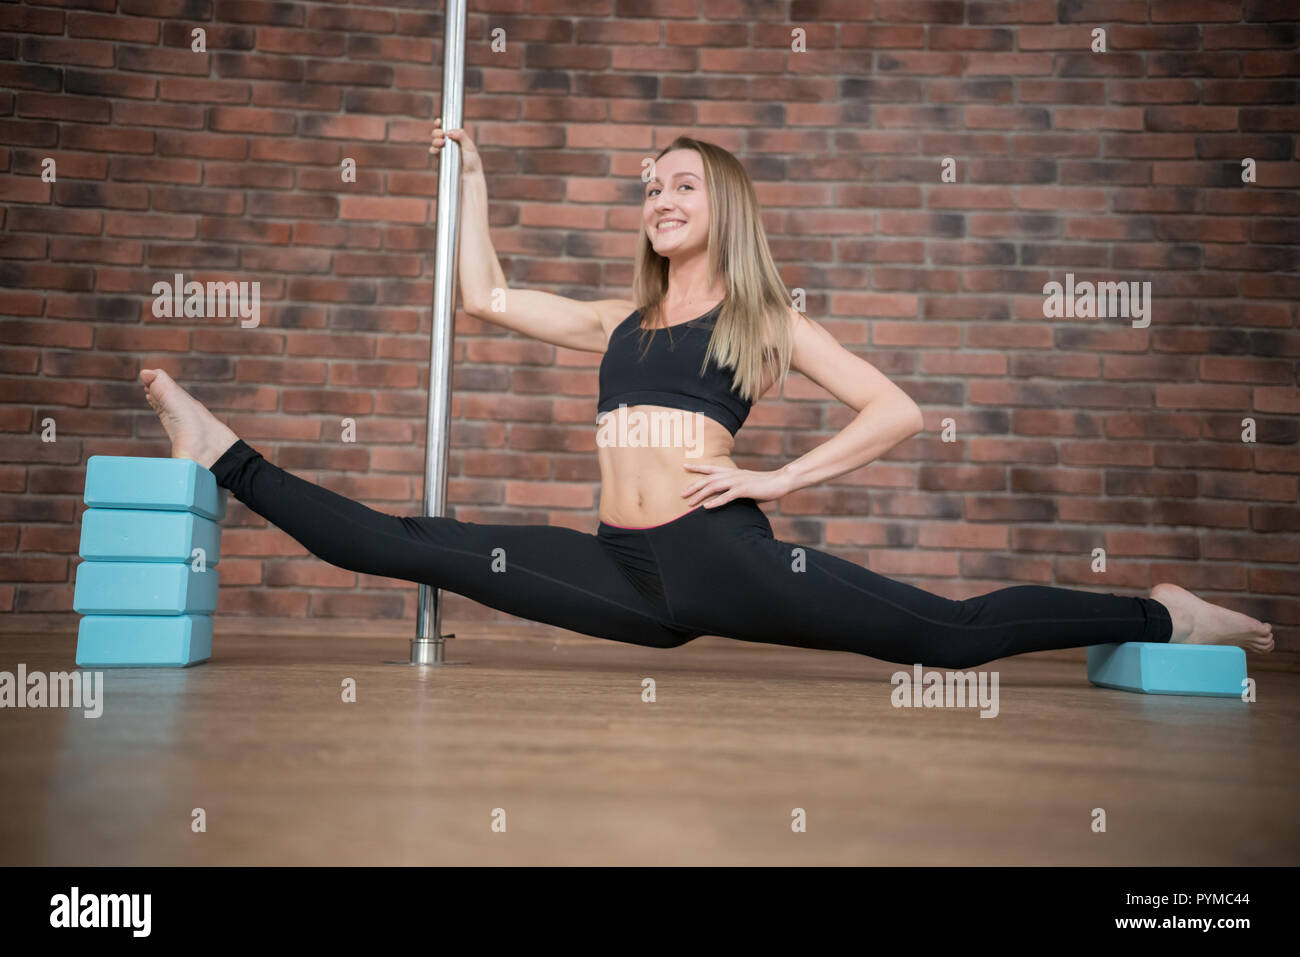 Beautiful young woman does the splits in pole dance studio - Stock Image